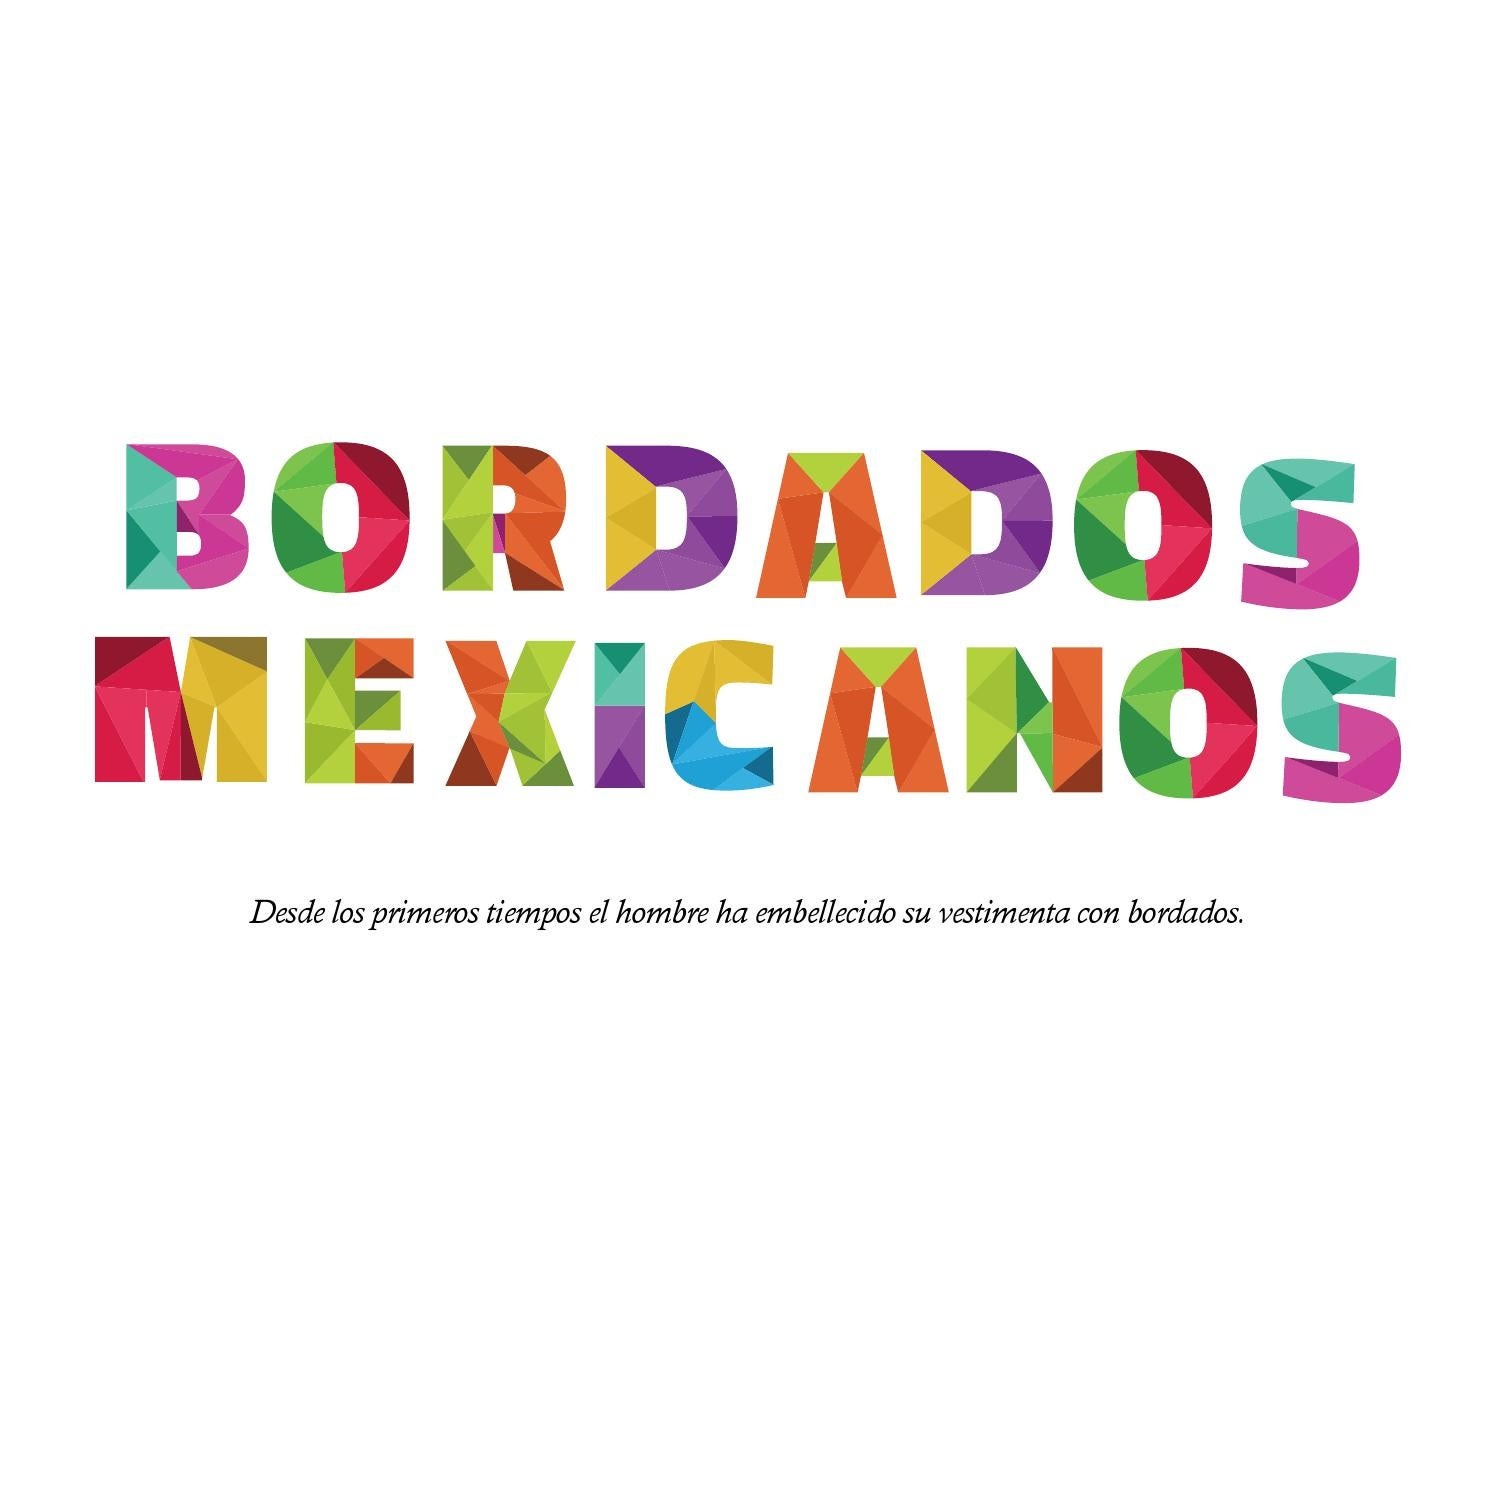 BORDADOS MEXICANOS by Fer Ortega - issuu